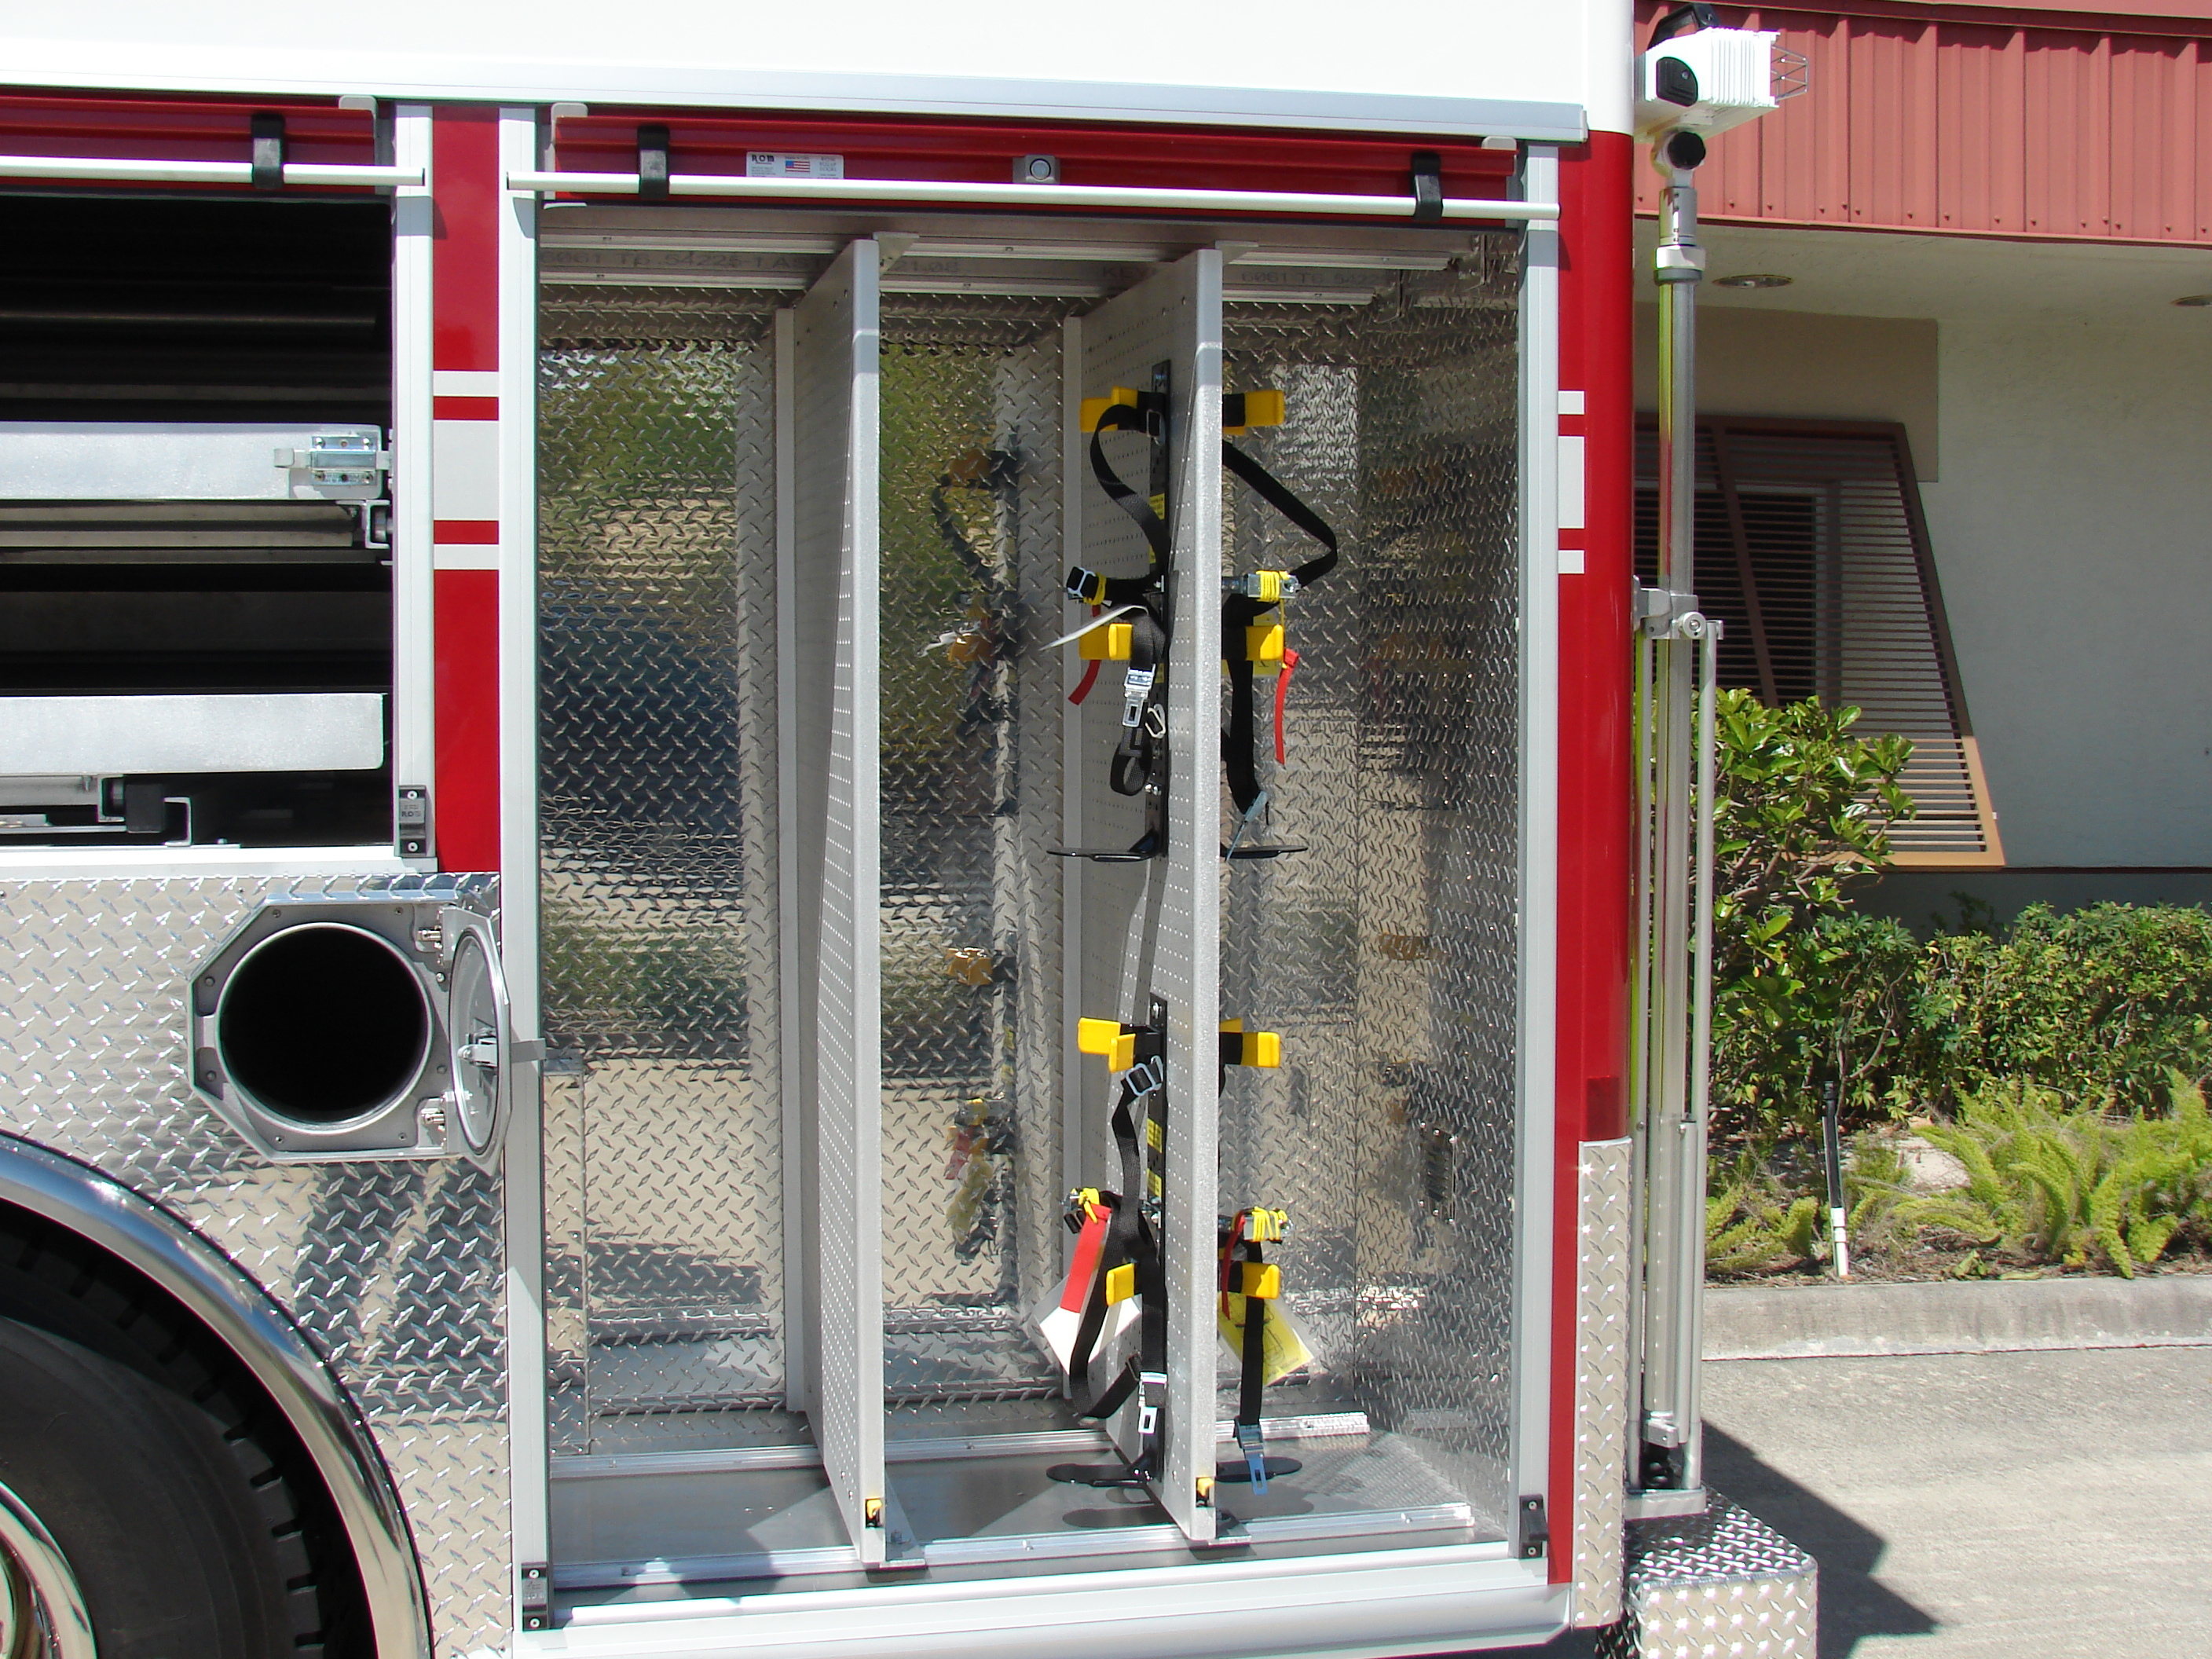 18-Ft. Crew Body Air/Light Rescue